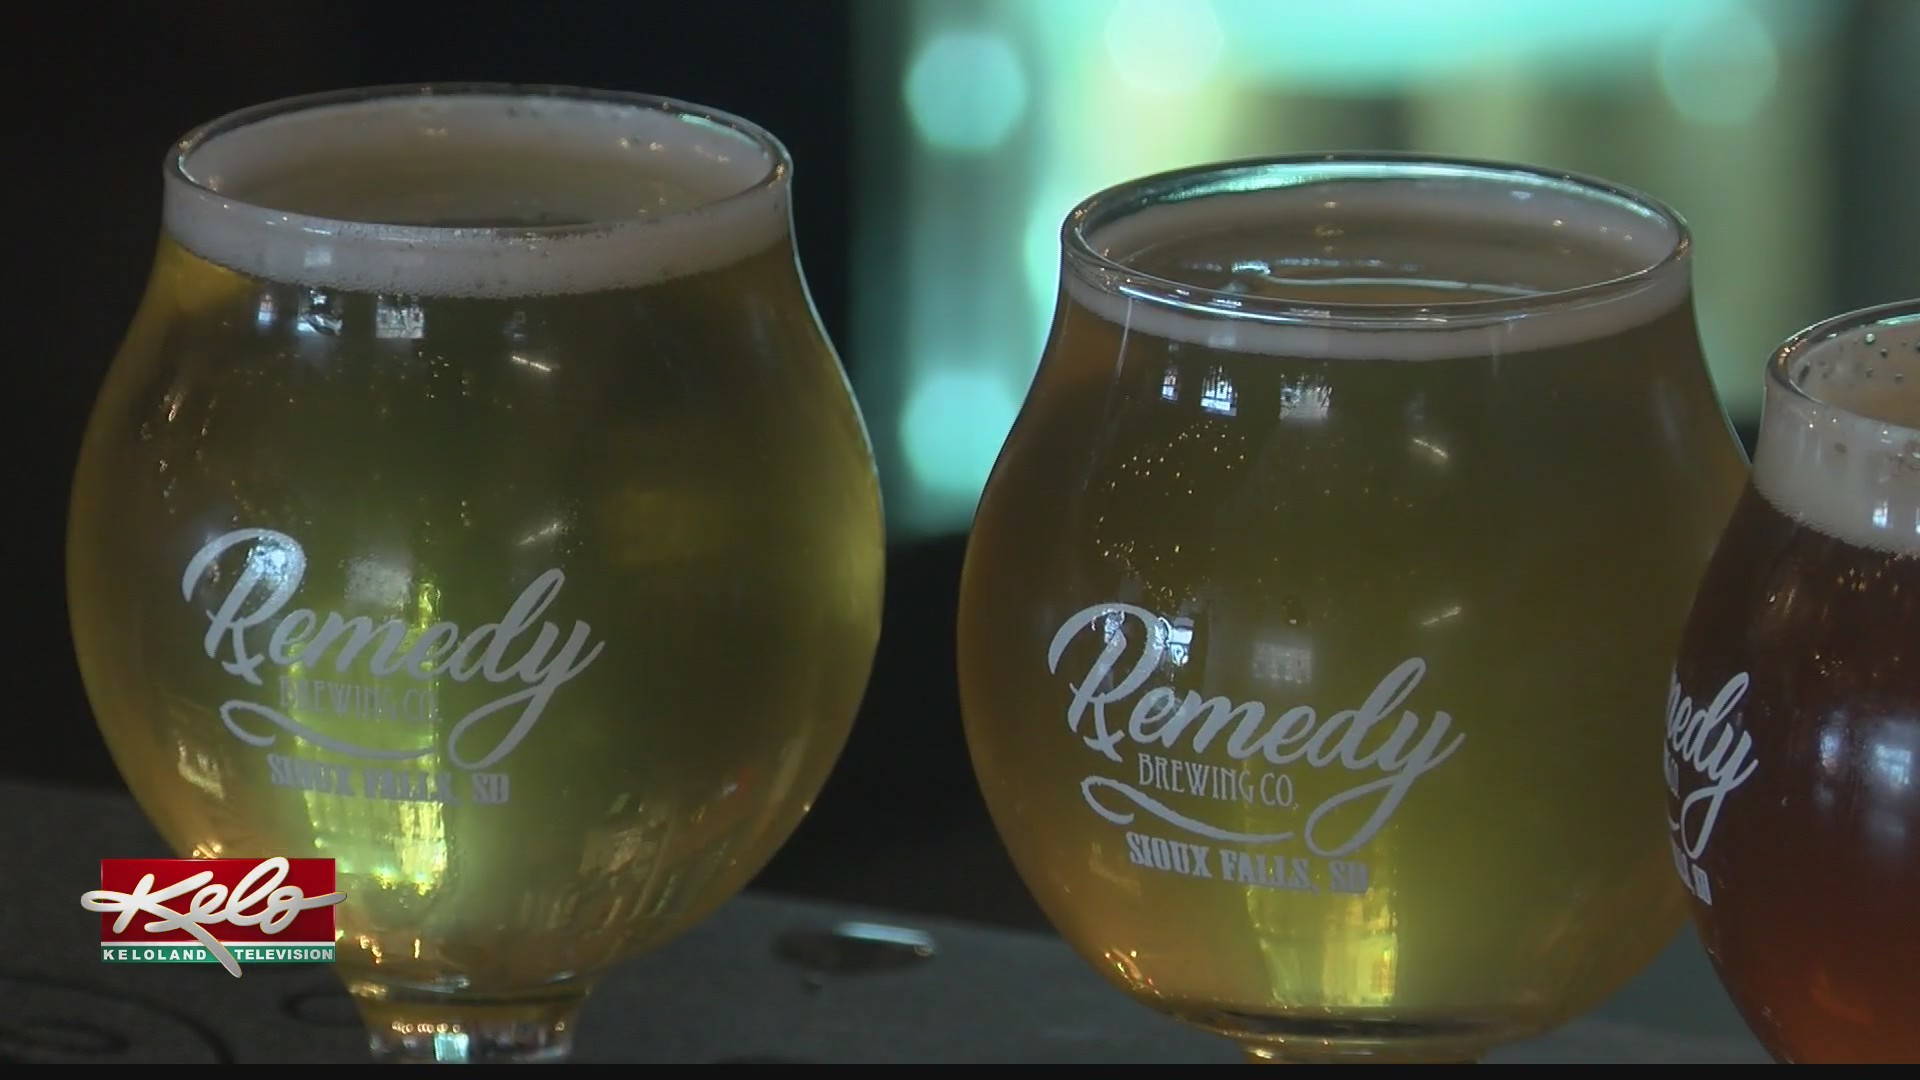 Remedy Brewing honoring Veterans with Midwest Honor Flight event Saturday